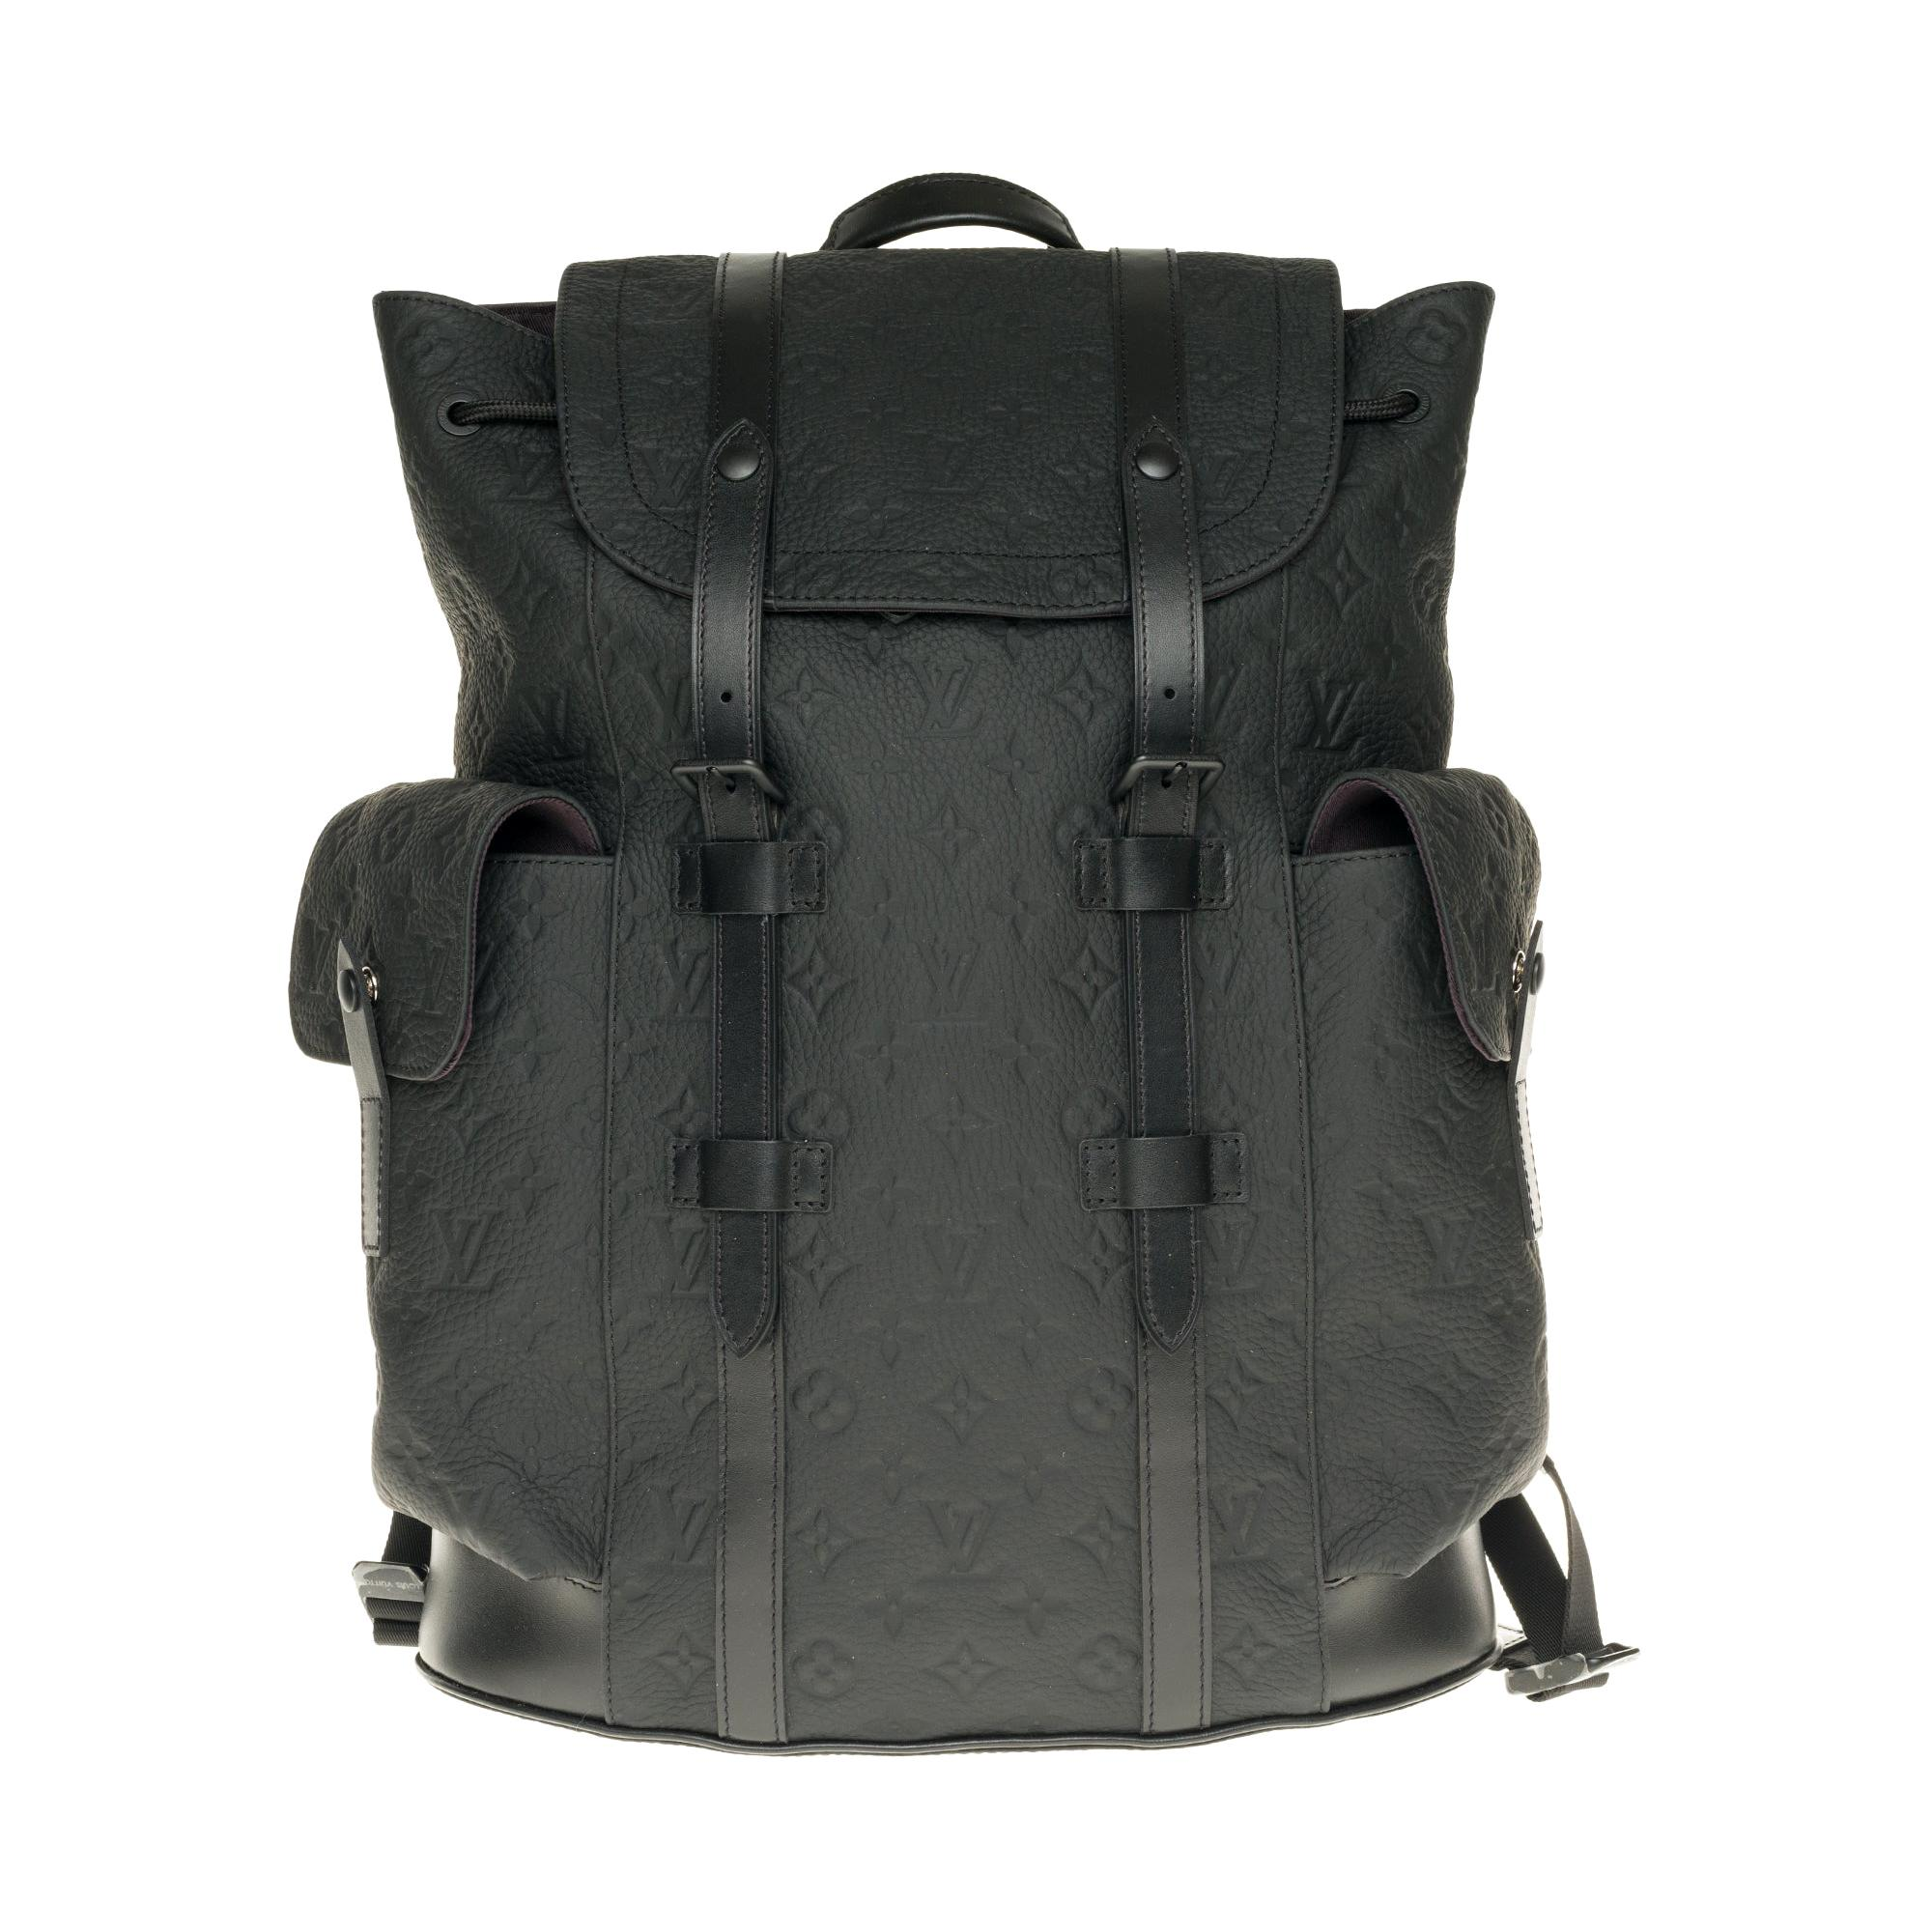 Brand New Louis Vuitton Backpack in black Taurillon leather embossed